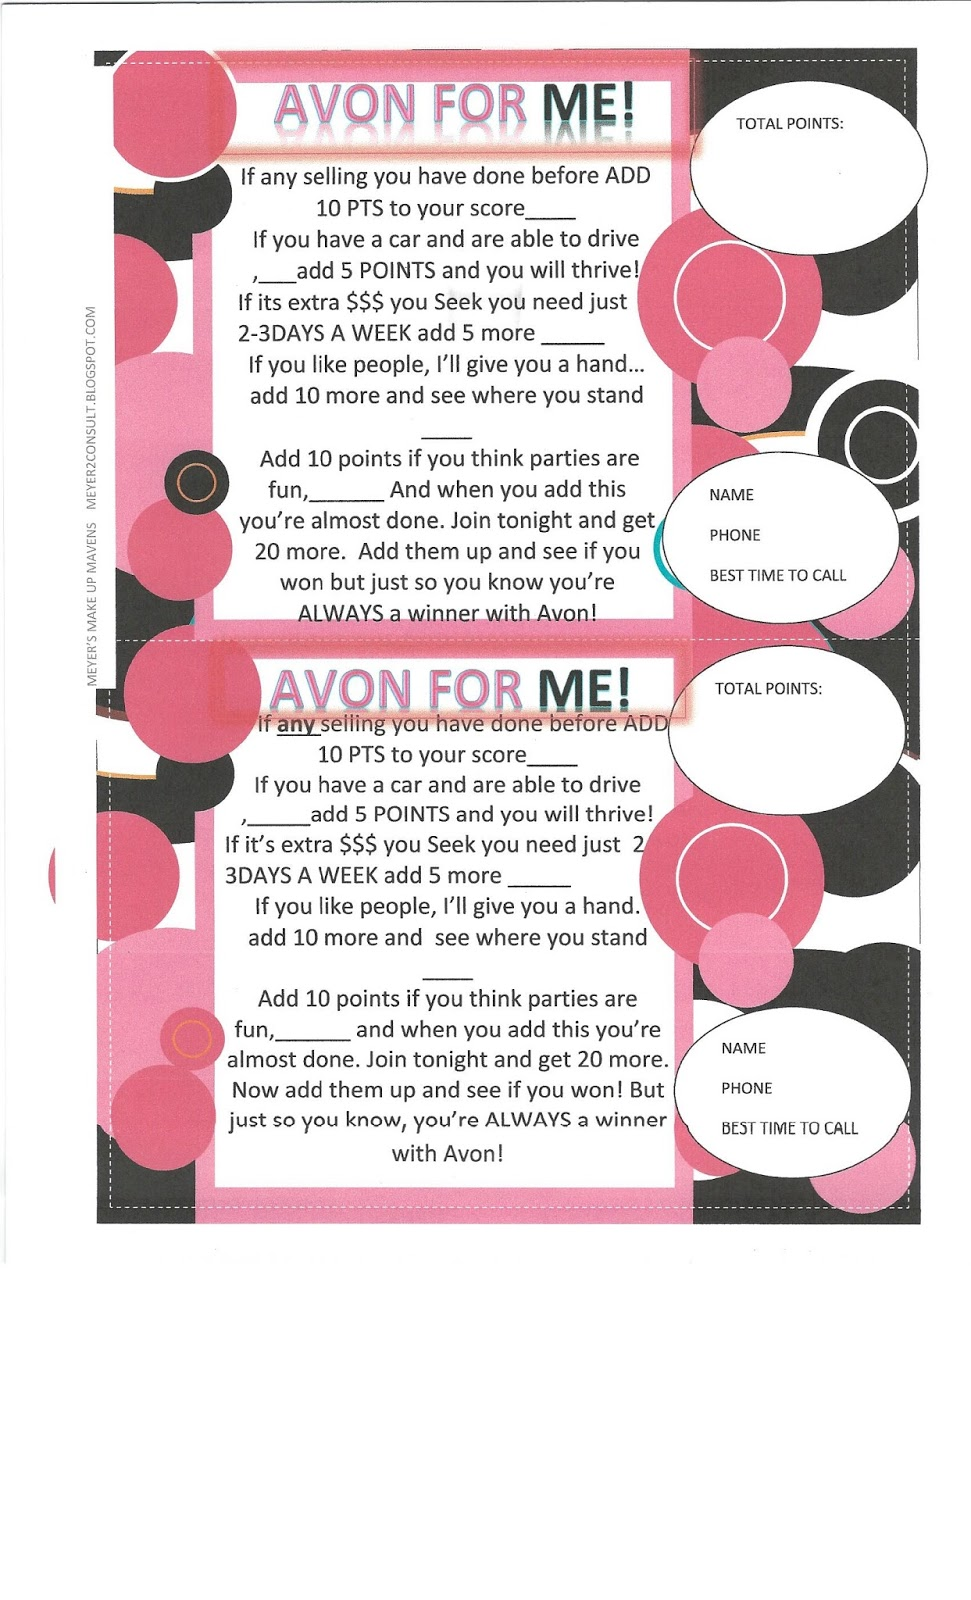 Meyers Make up Mavens: How to have the perfect Avon Grand Opening